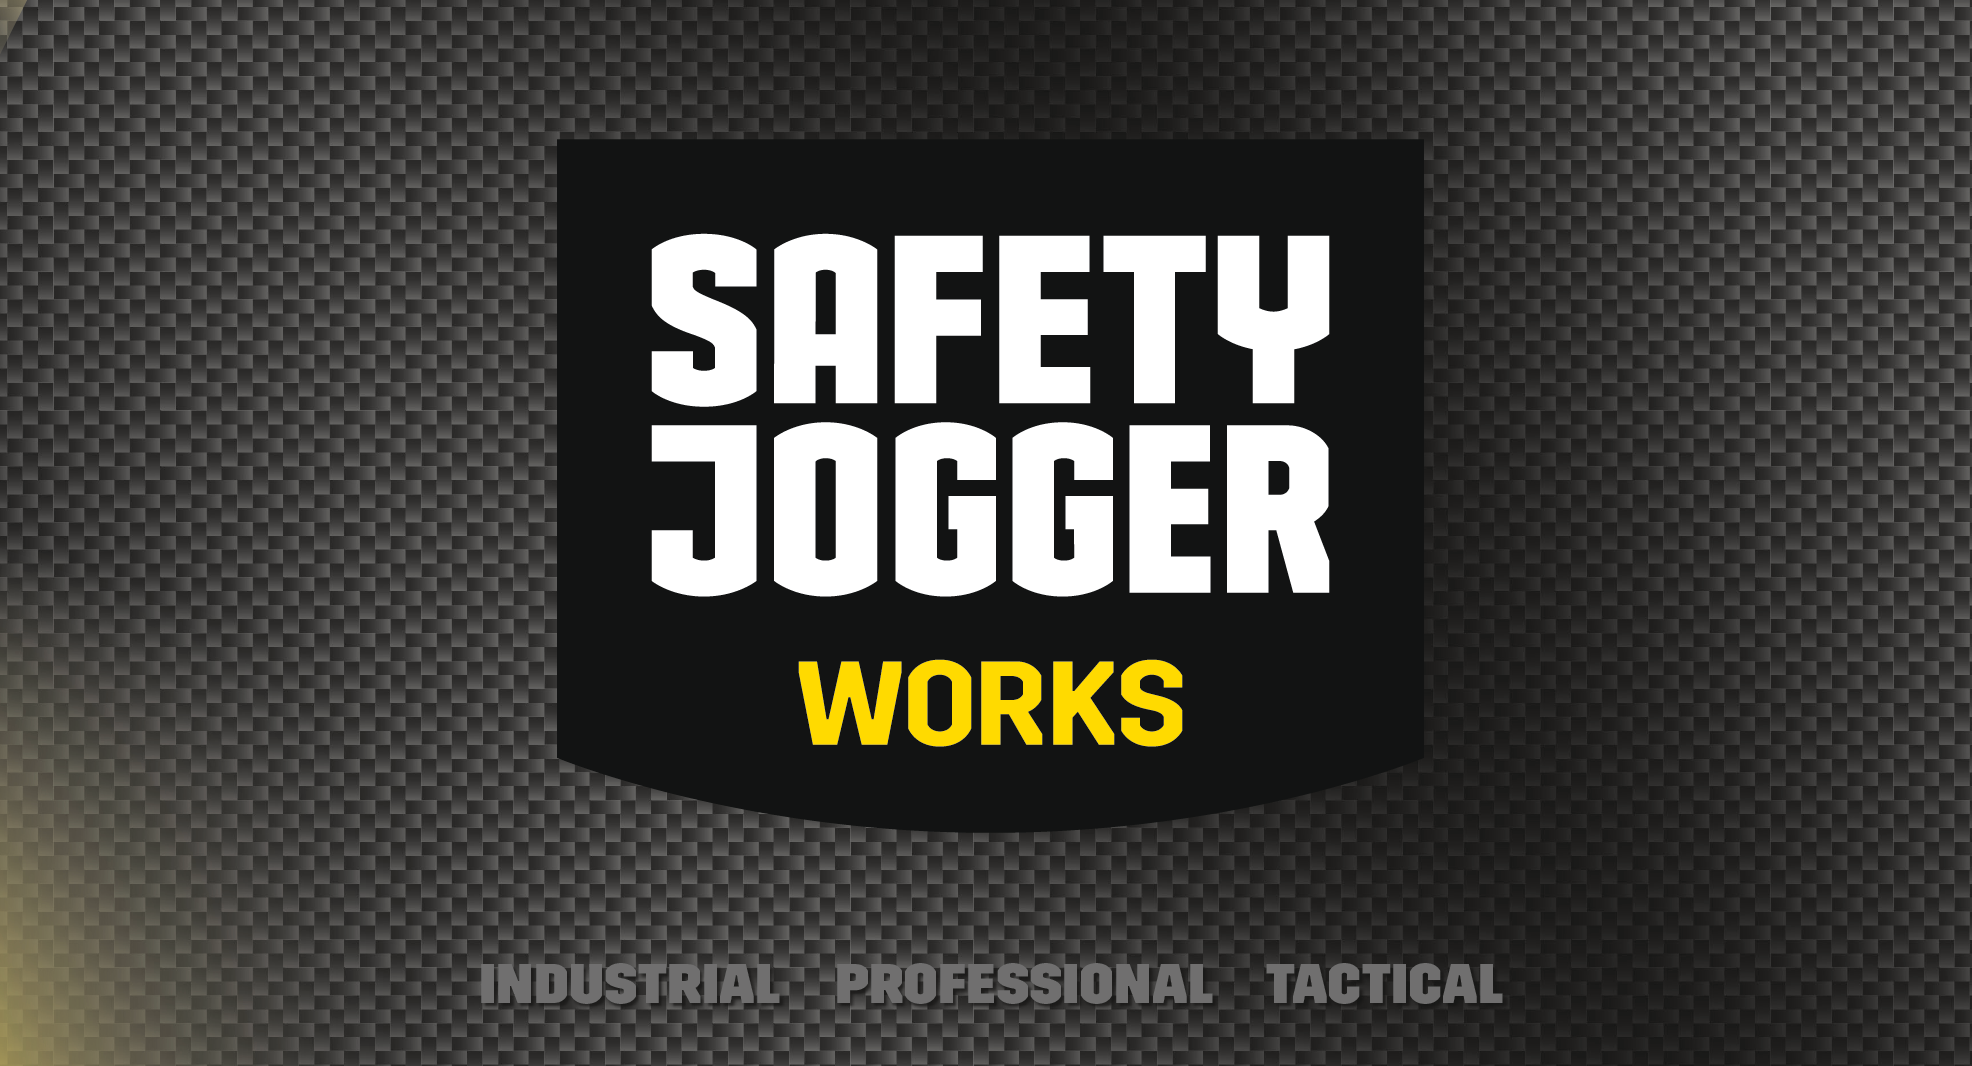 See the SAFETY JOGGER work shoe collection catalogs.